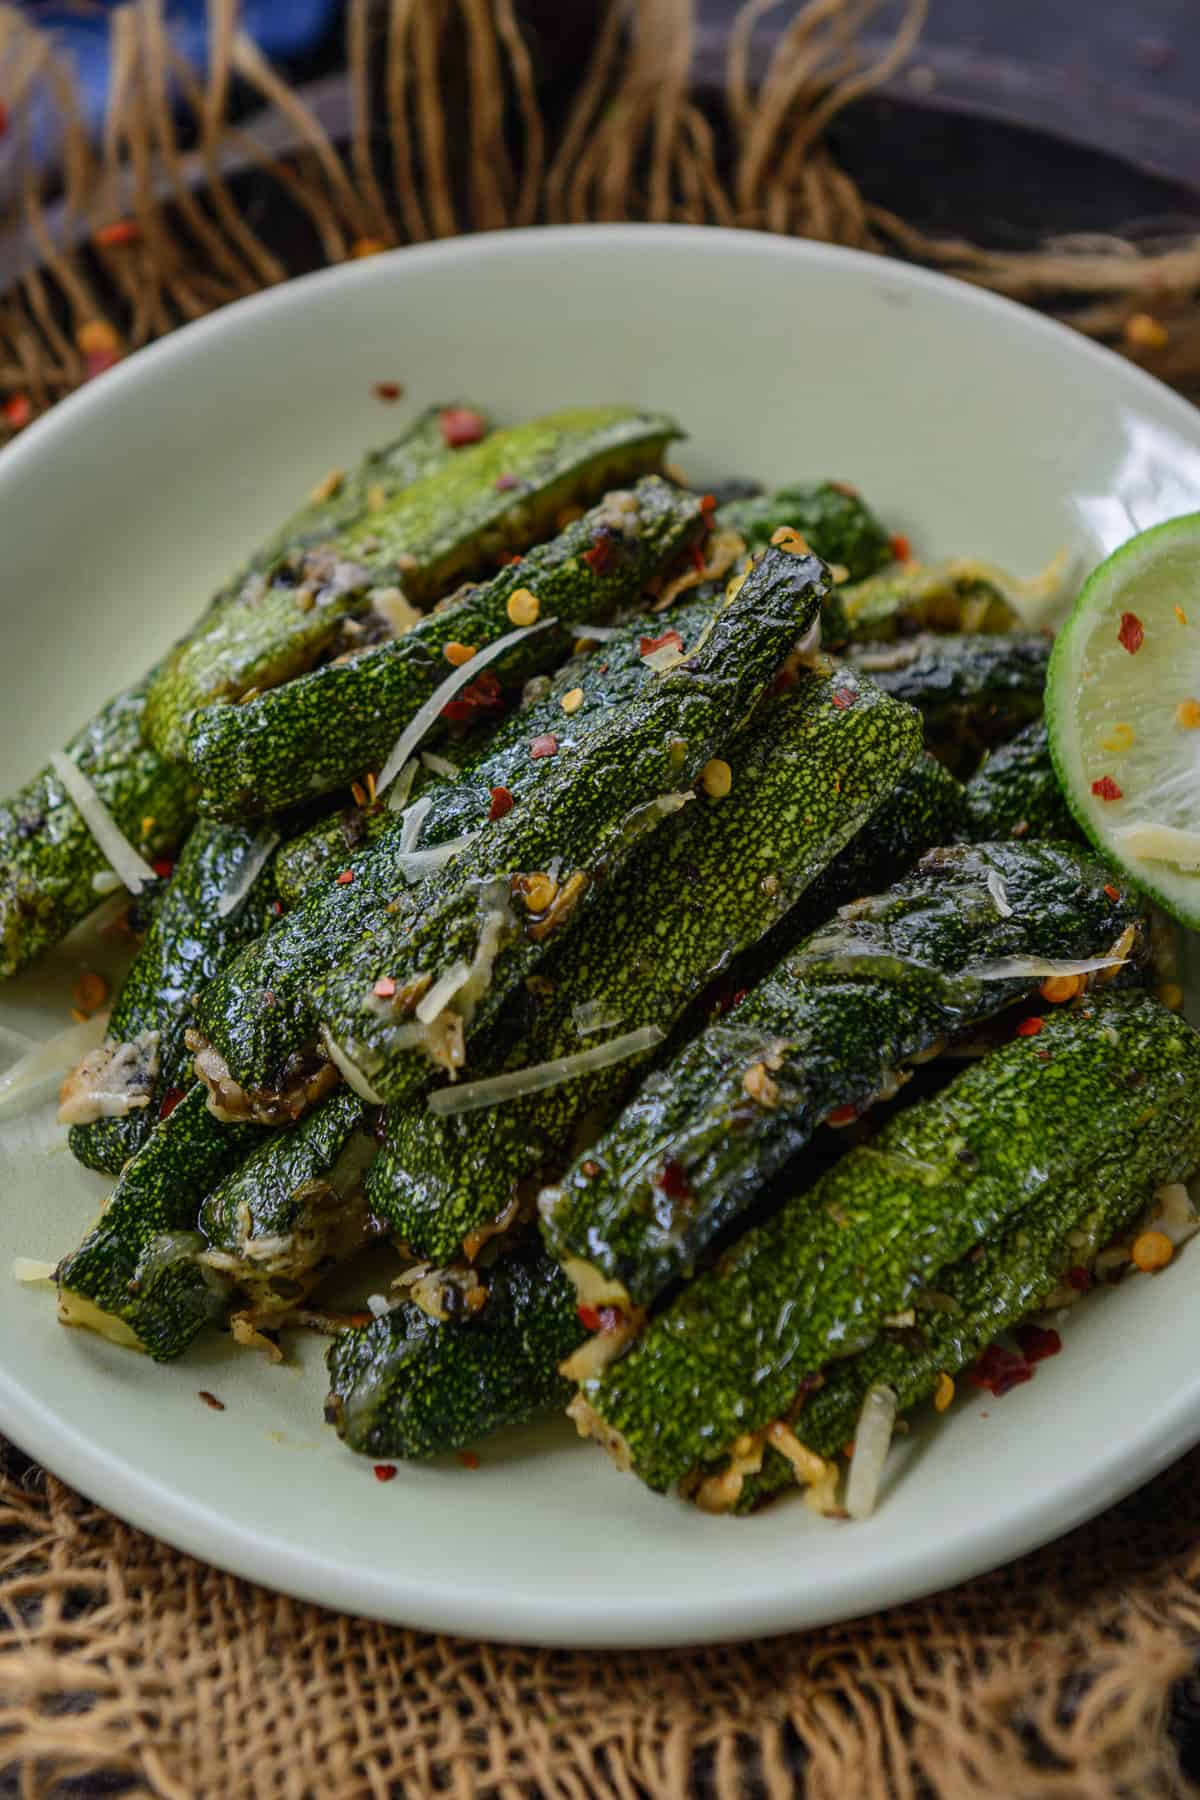 Oven Roasted zucchini served on a plate.